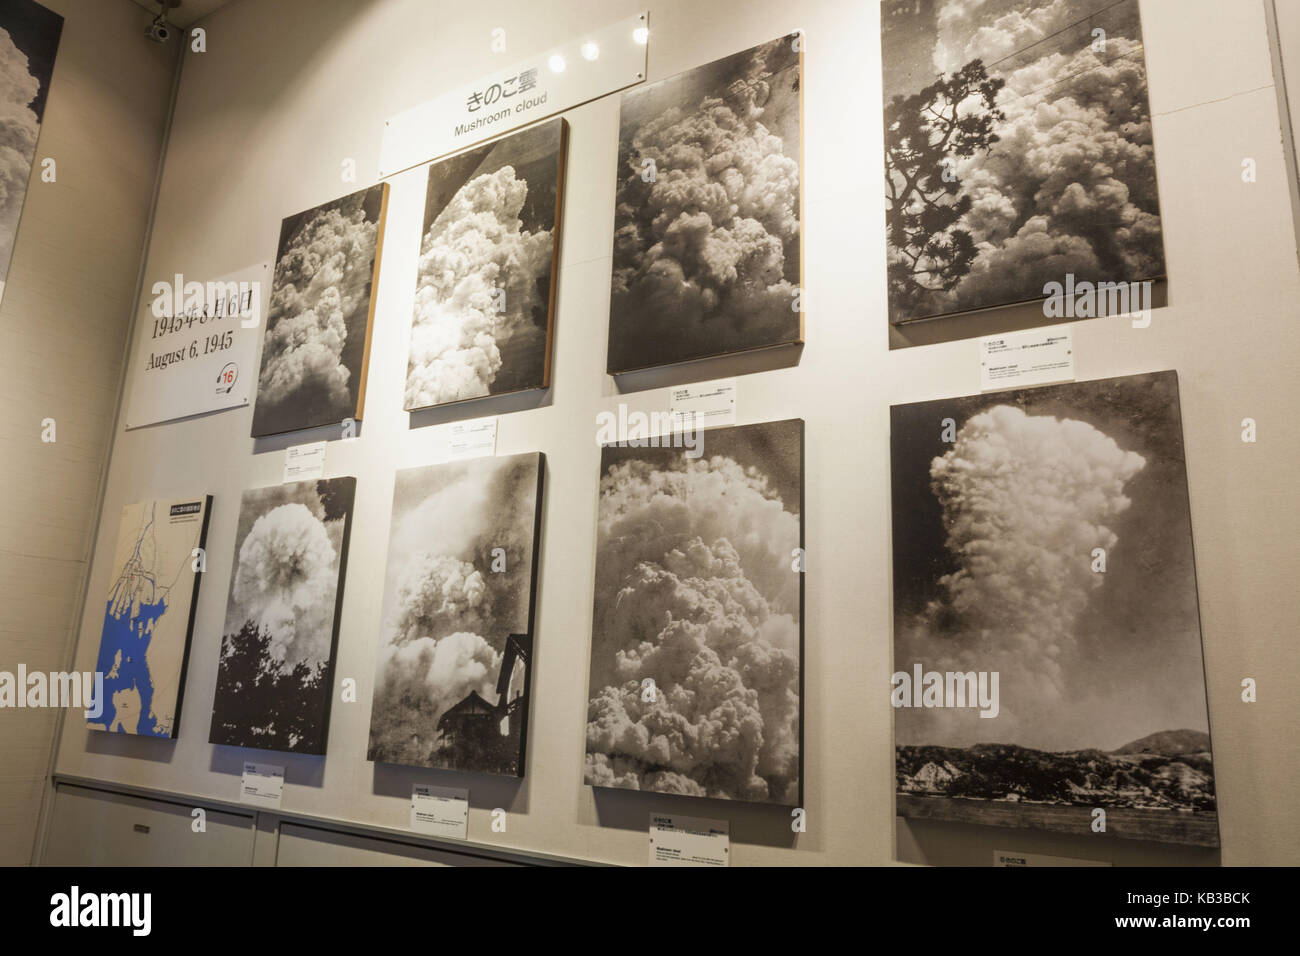 Japan, Kyushu, Hiroshima, peace park, Hiroshima peace museum, inside, exhibit, photographies of the nuclear bomb - Stock Image